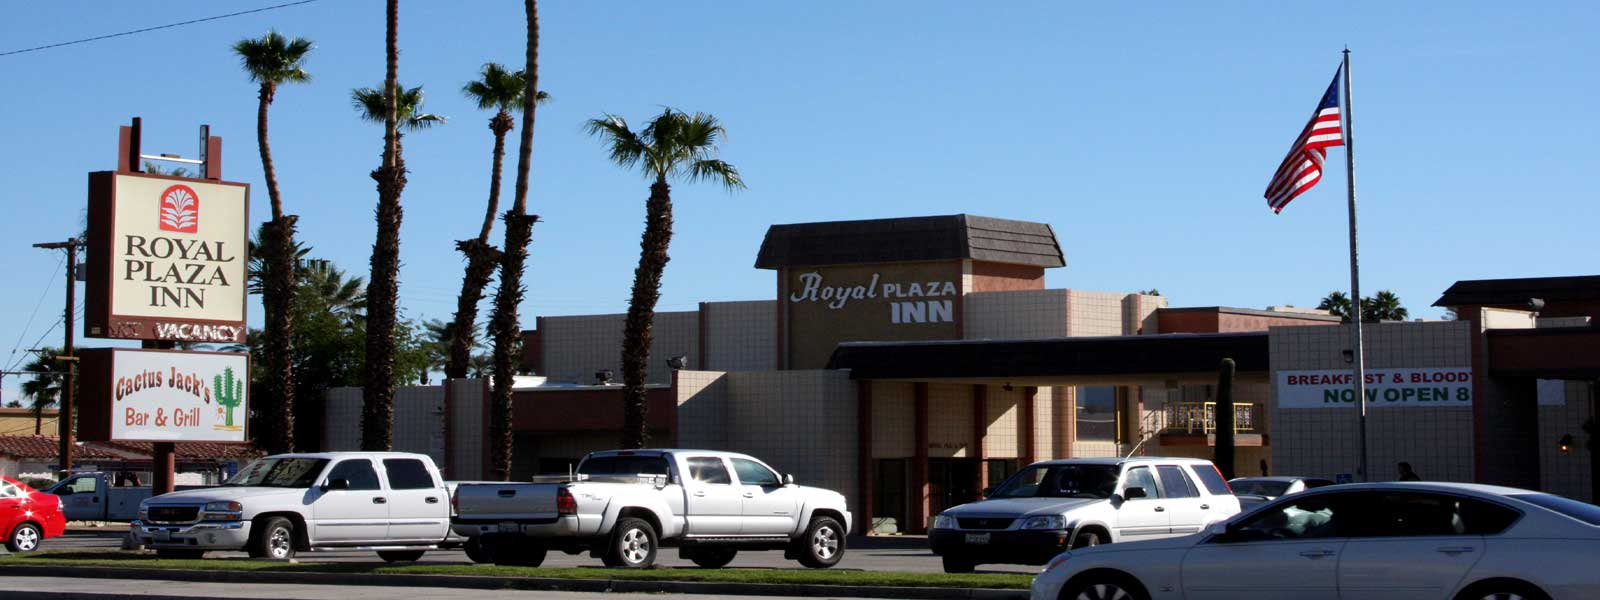 Hotel Clean Comfortable Rooms Lodging Hotels Motels in Indio California